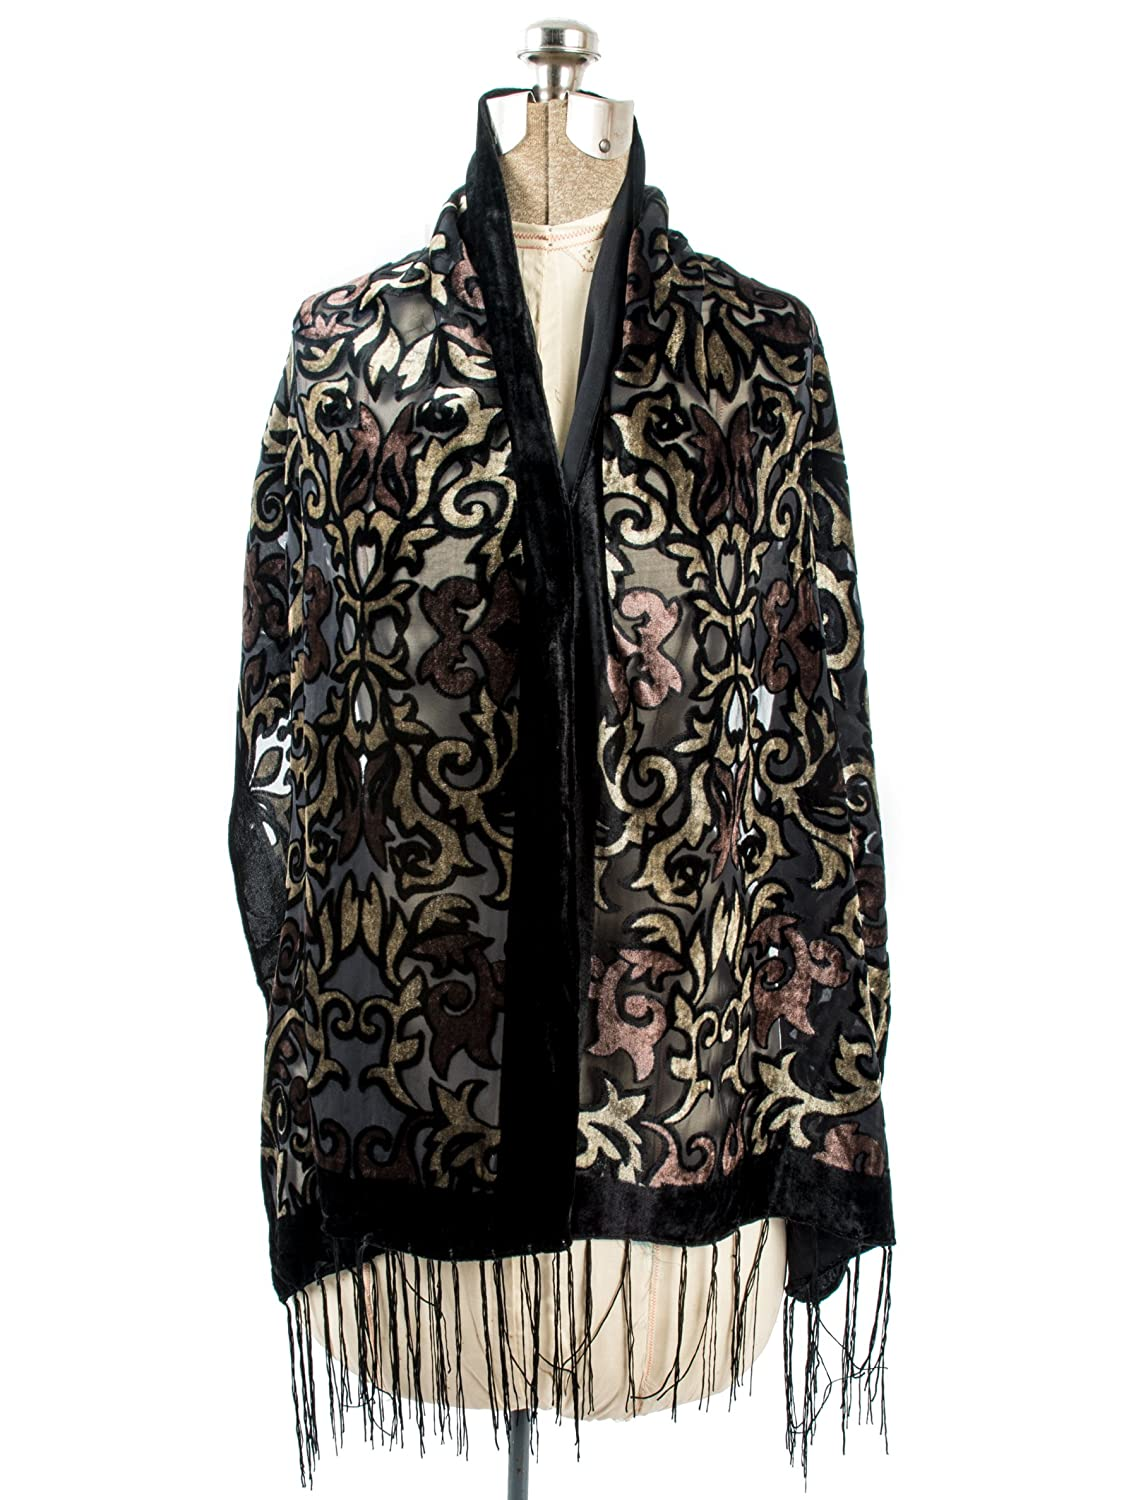 1920s Style Wraps Bohomonde Gia Scarf - Silk Brocade Print Velvet Burnout Scarf with Fringe Ends $17.95 AT vintagedancer.com